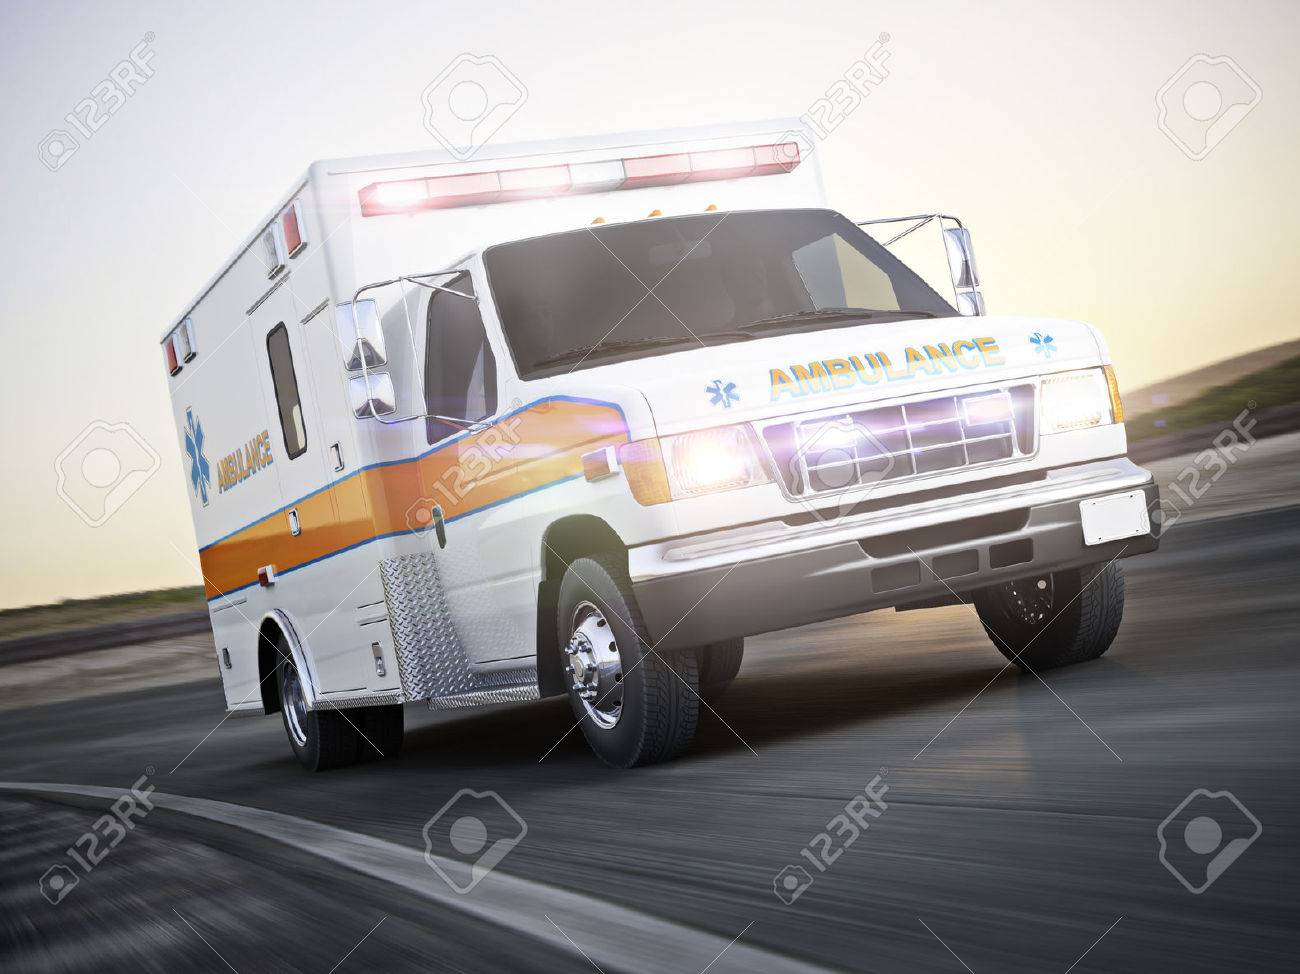 Ambulance running with lights and sirens on a street with motion blur. Photo realistic 3d model scene. Standard-Bild - 52448900